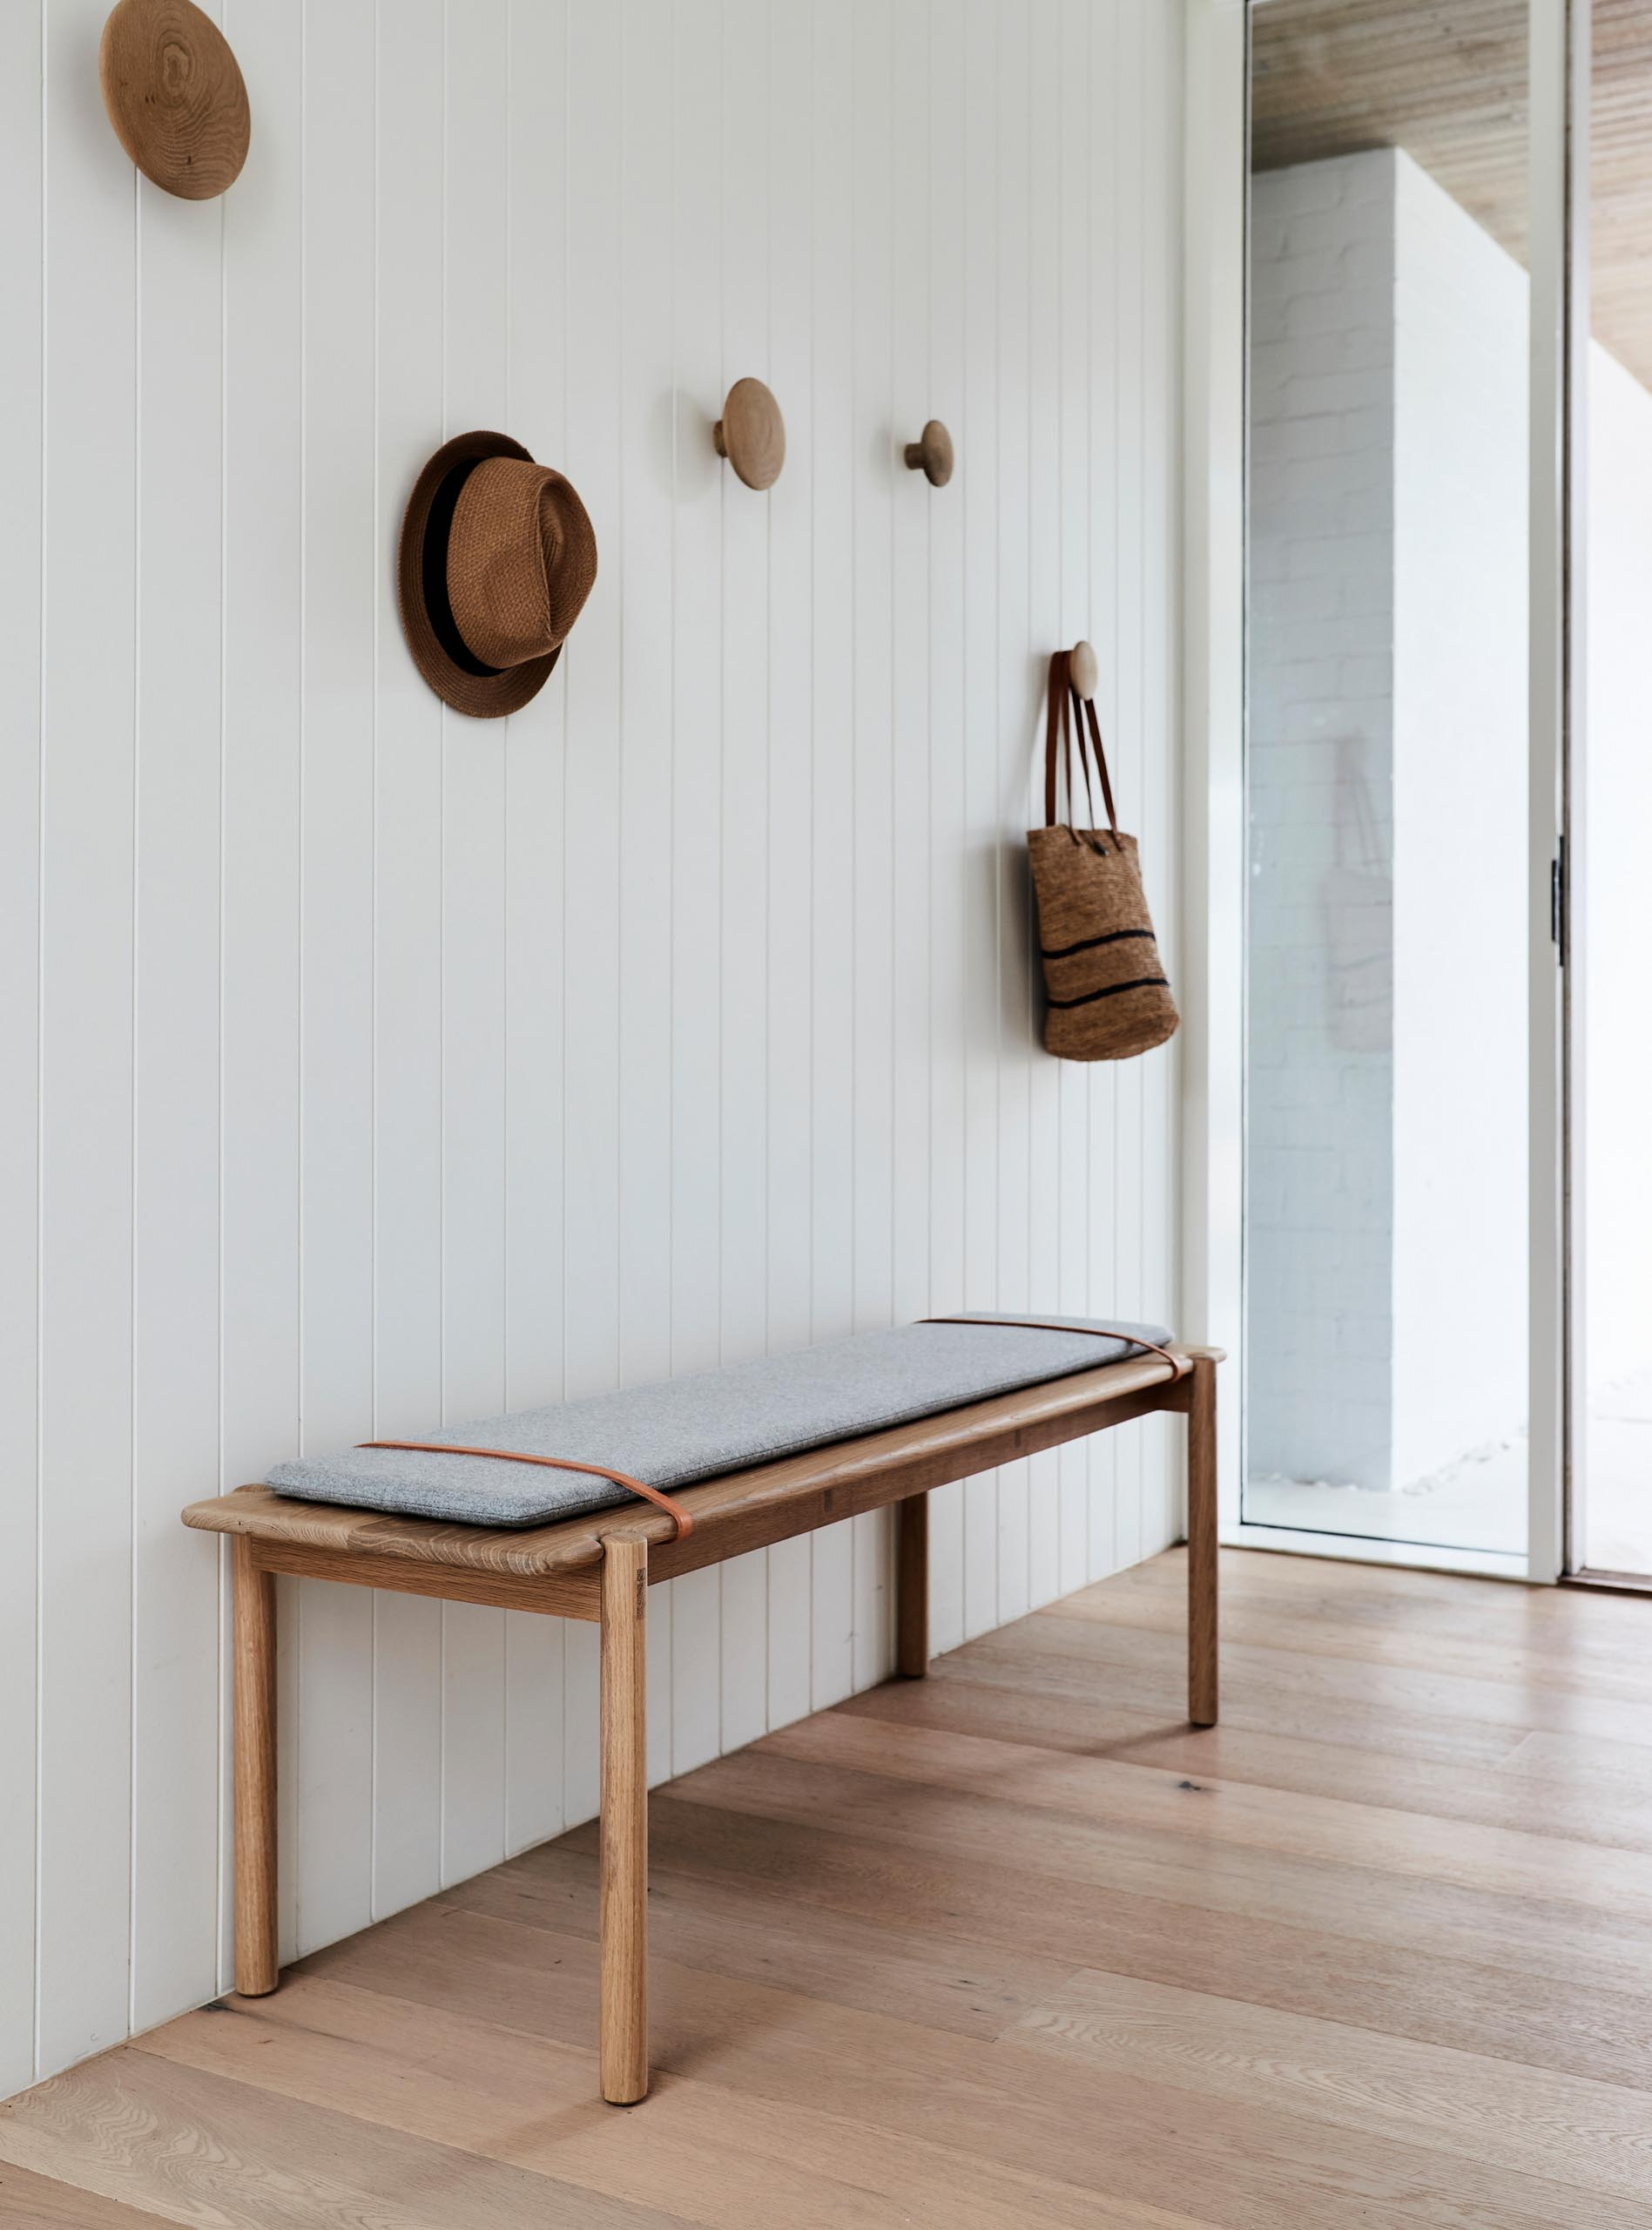 This modern entryway has a white wall, oak floors, a simple bench, and round wood wall hooks.